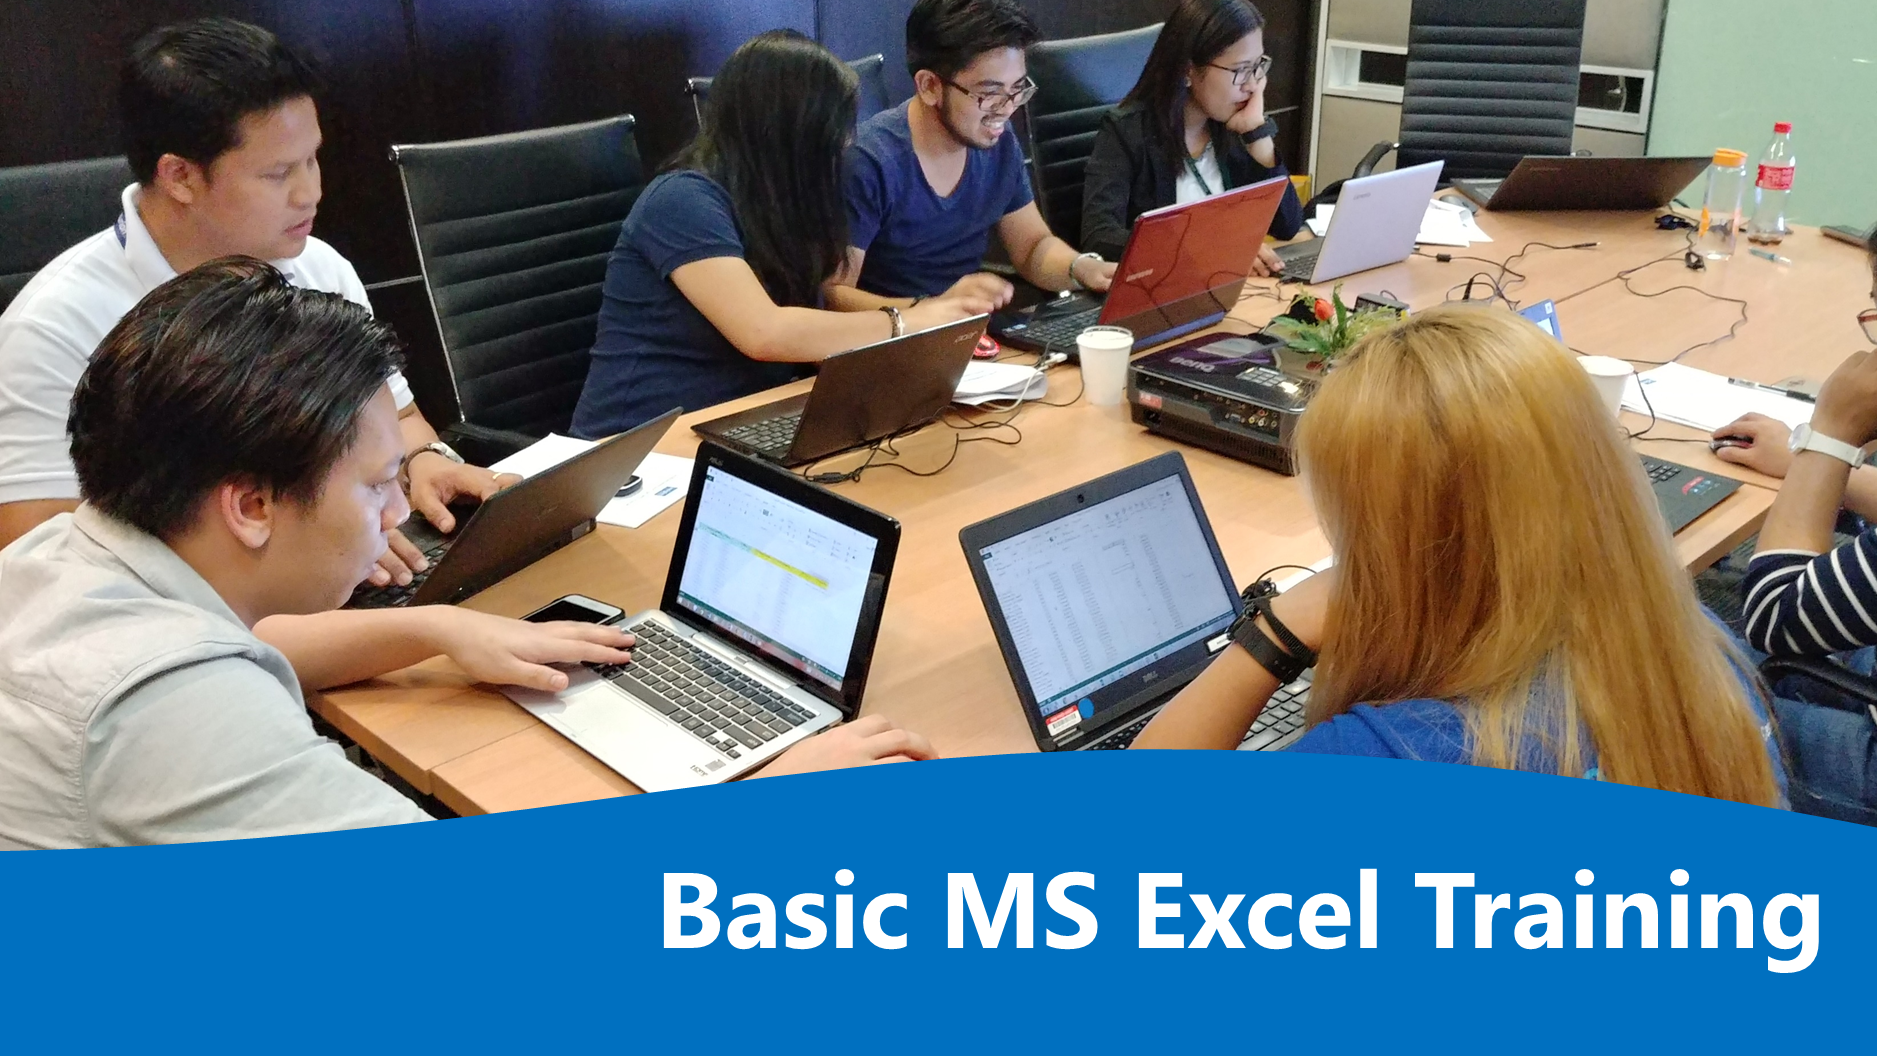 Basic MS Excel 2007 / MS Excel 2010 / MS Excel 2013 - Half Day's Enrollment Cover